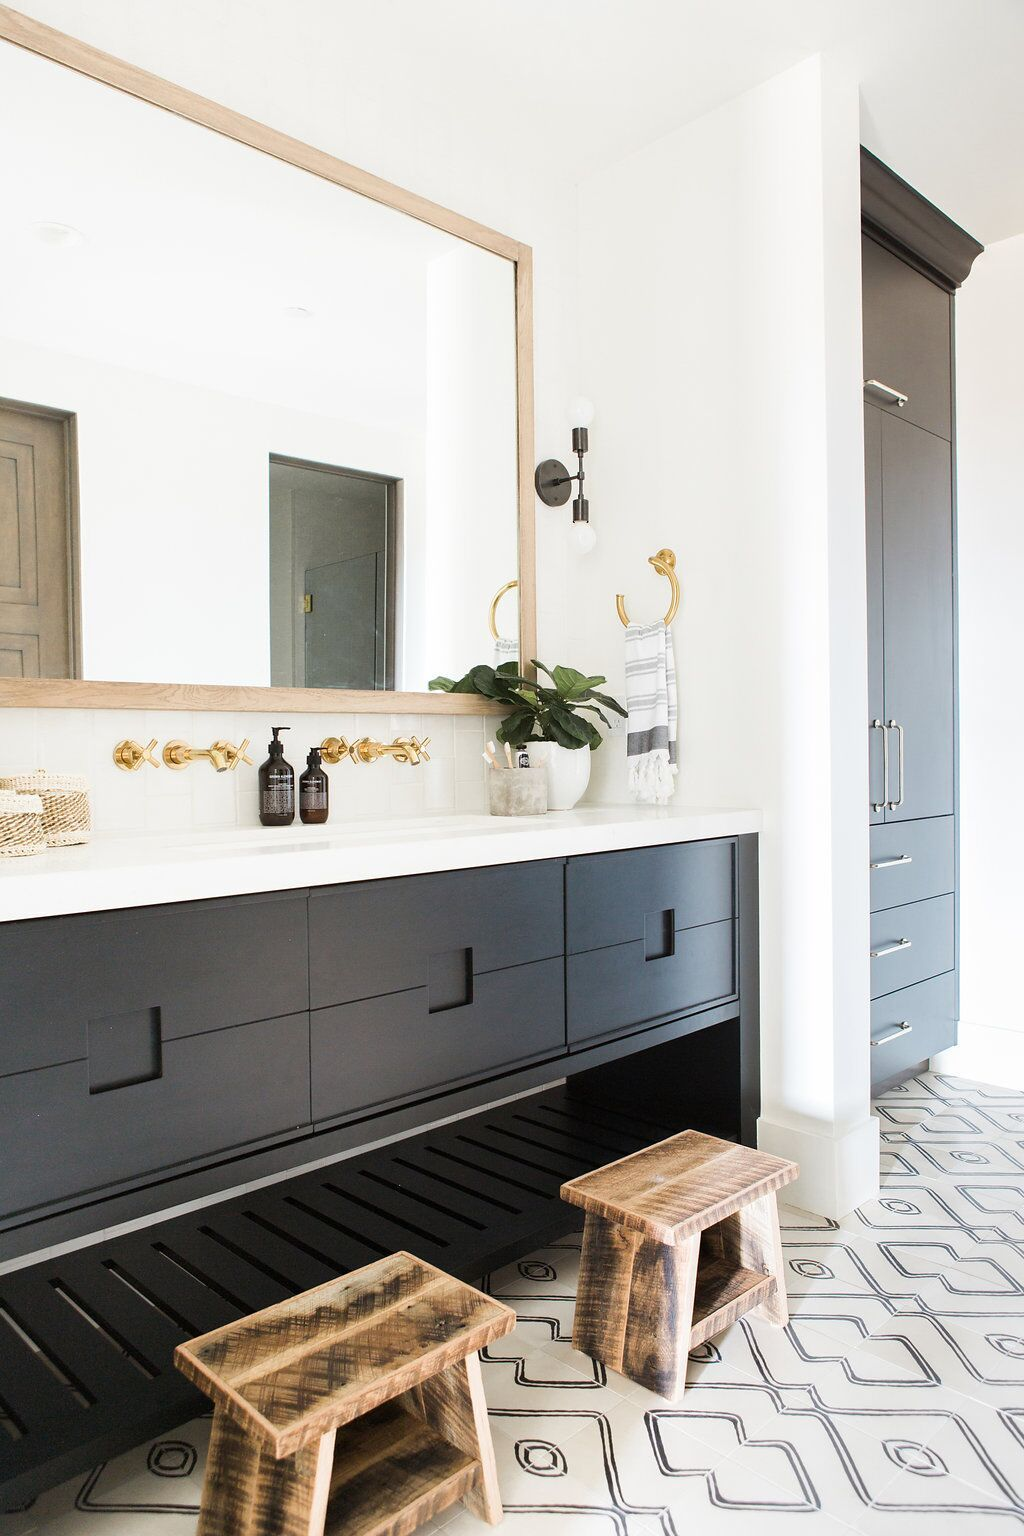 Promontory Project: Downstairs, Office | Pinterest | Patterns, White ...